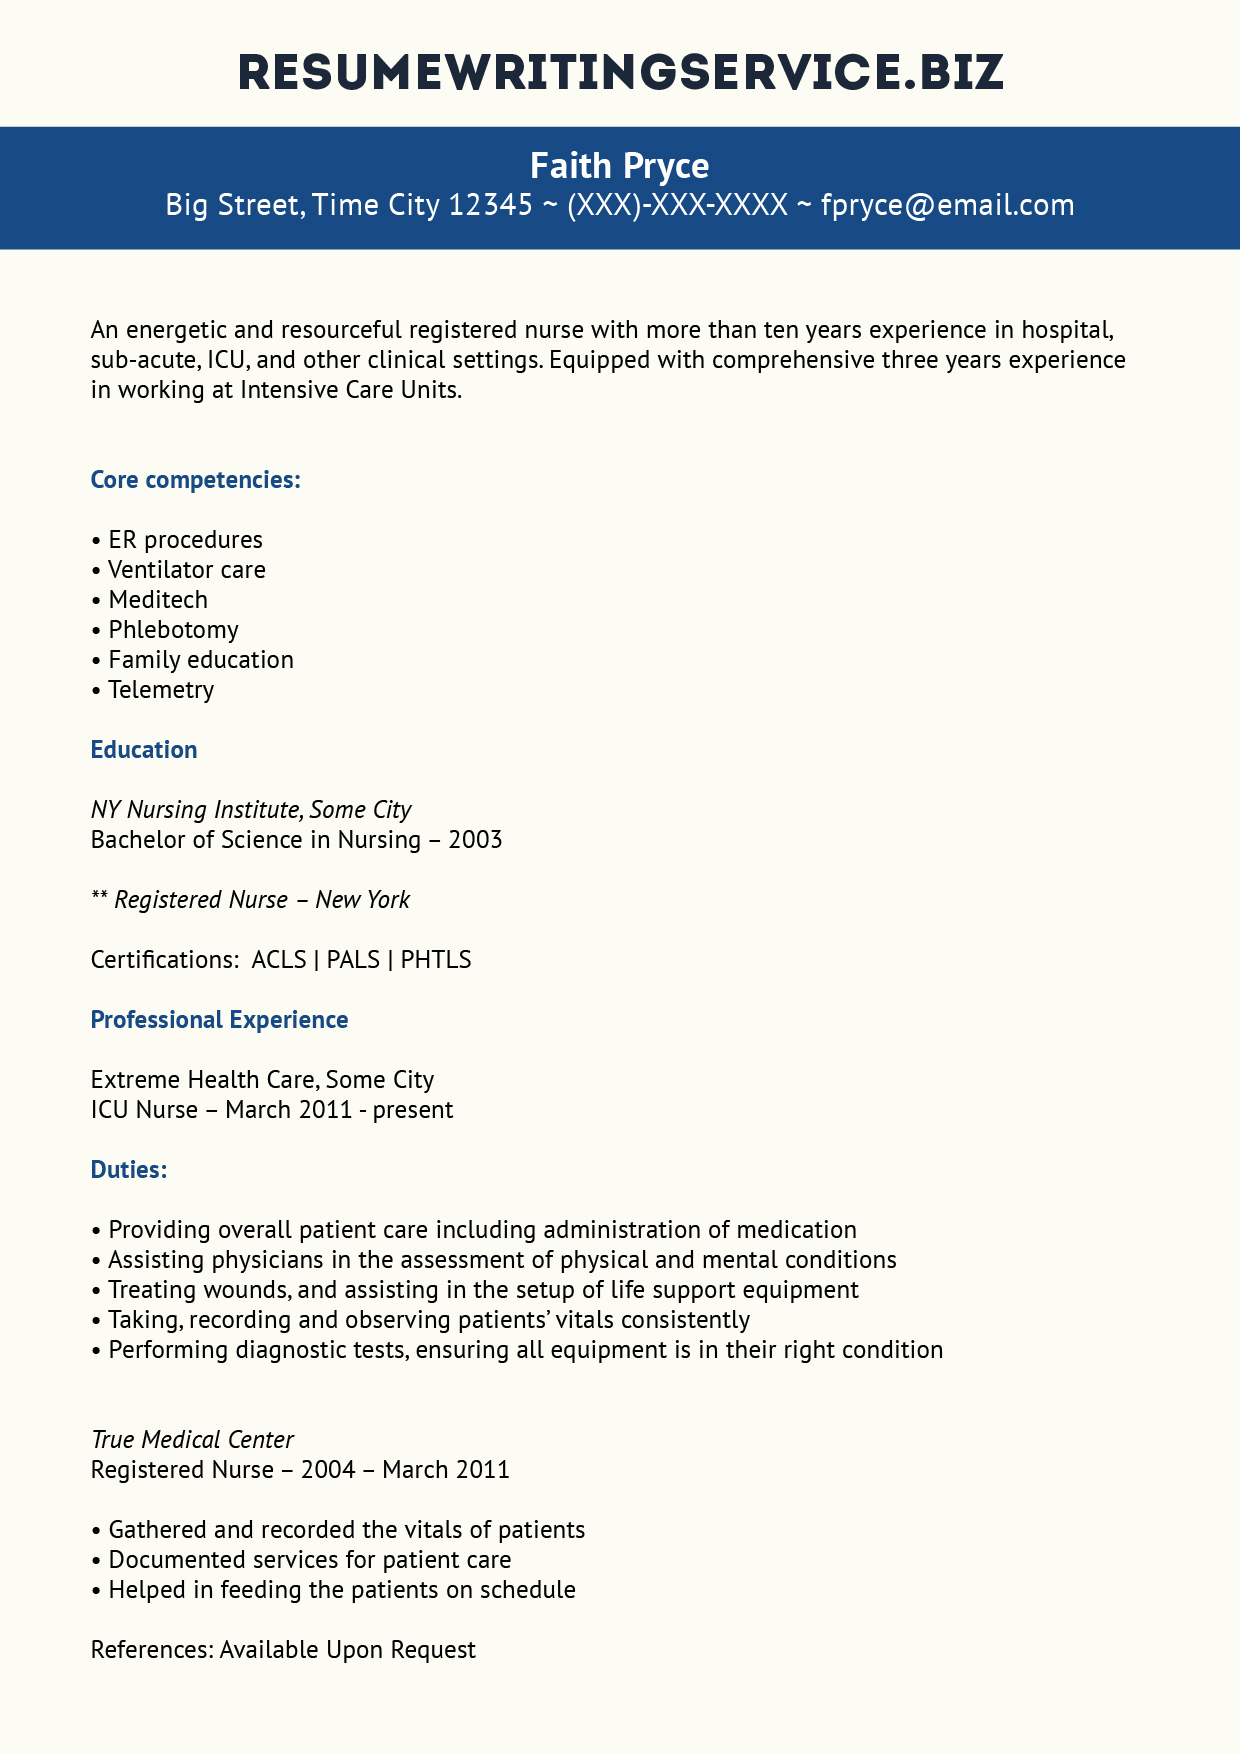 Sample Resume For Nurses Newly Graduated Philippines Best Resume